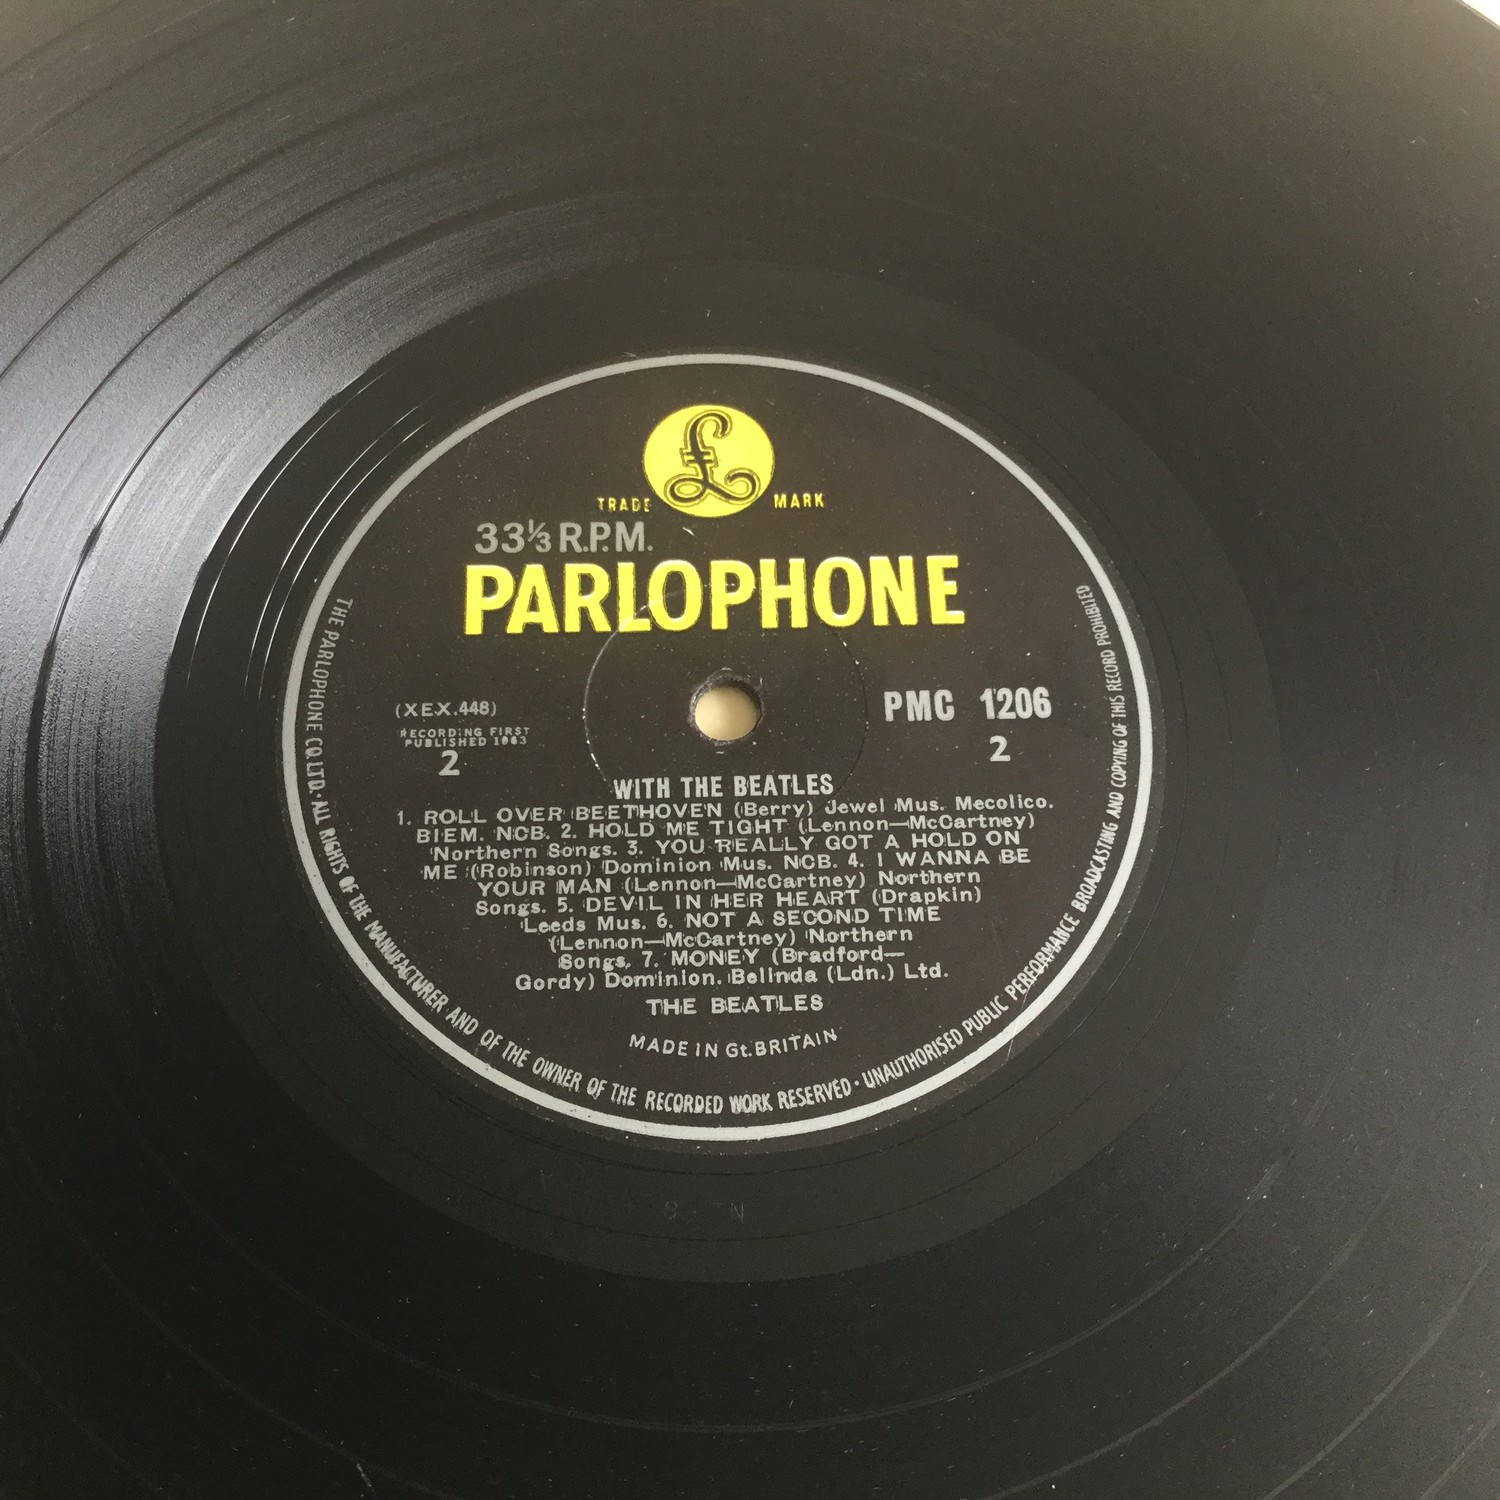 BEATLES 'WITH THE BEATLES' LP RECORD. Spelling mistake here on side 2 label with 'Got A' instead - Image 3 of 4